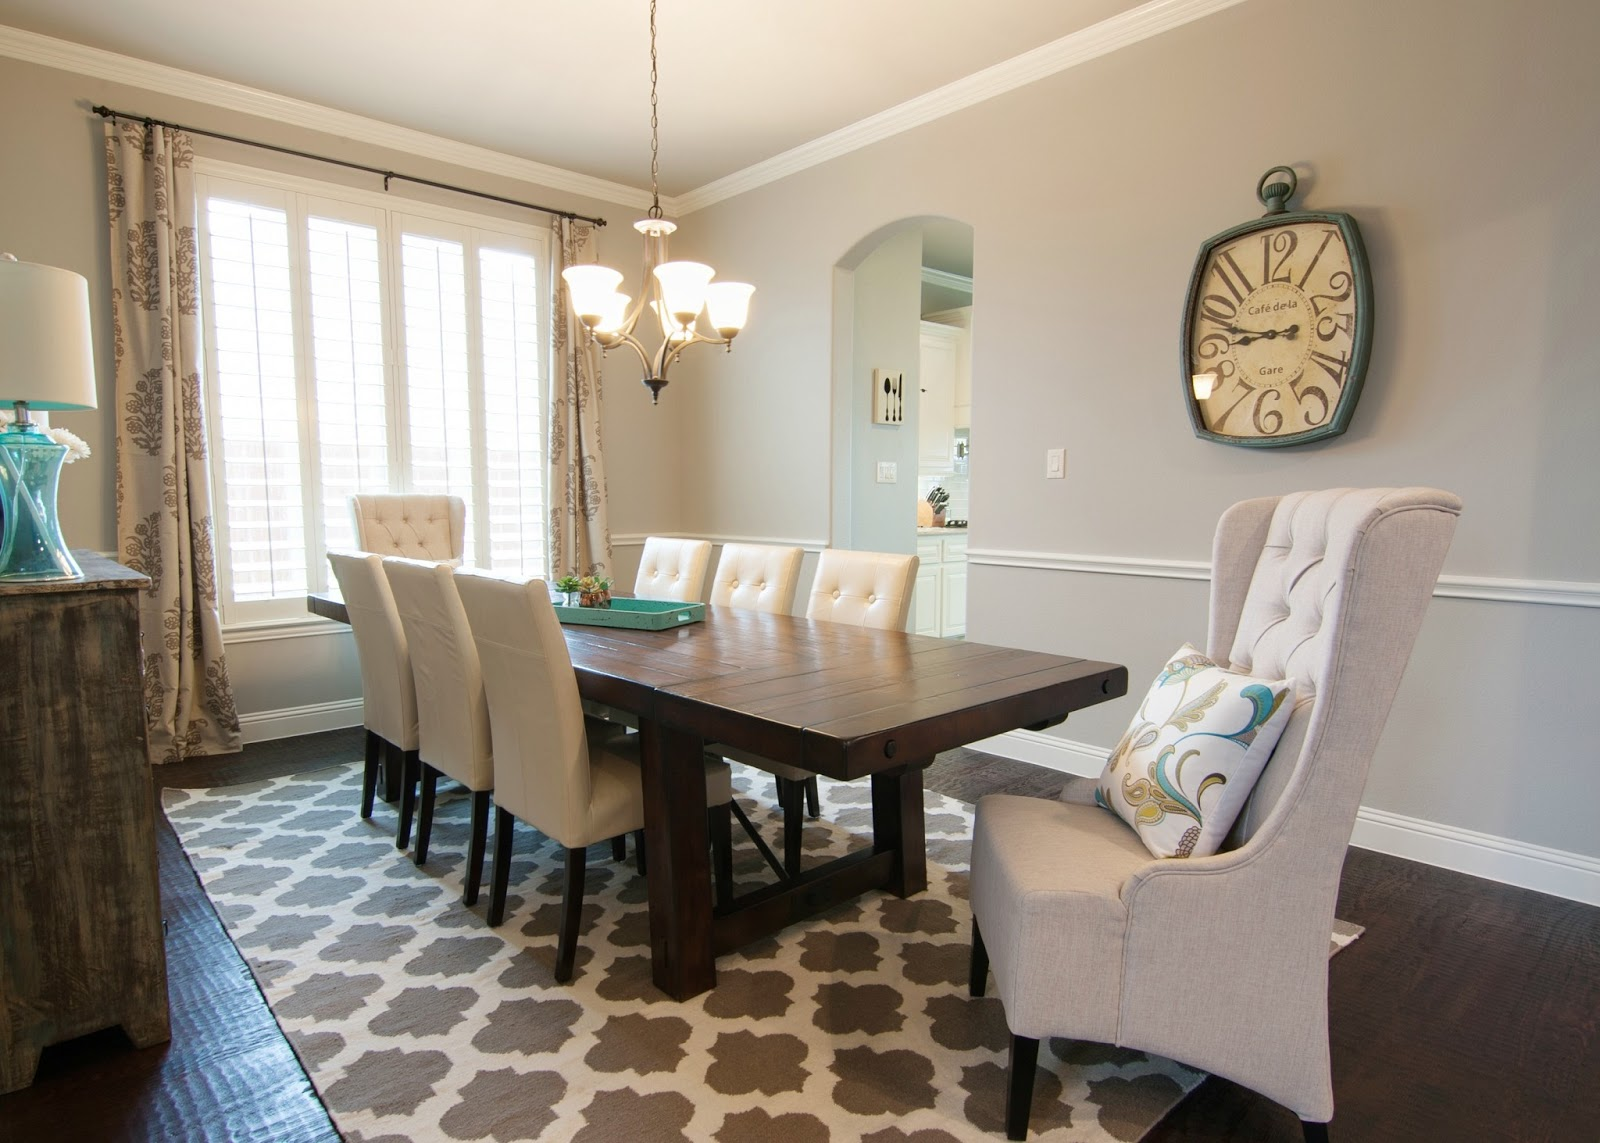 Dining room ideas 2013 -  Dining Room Tour